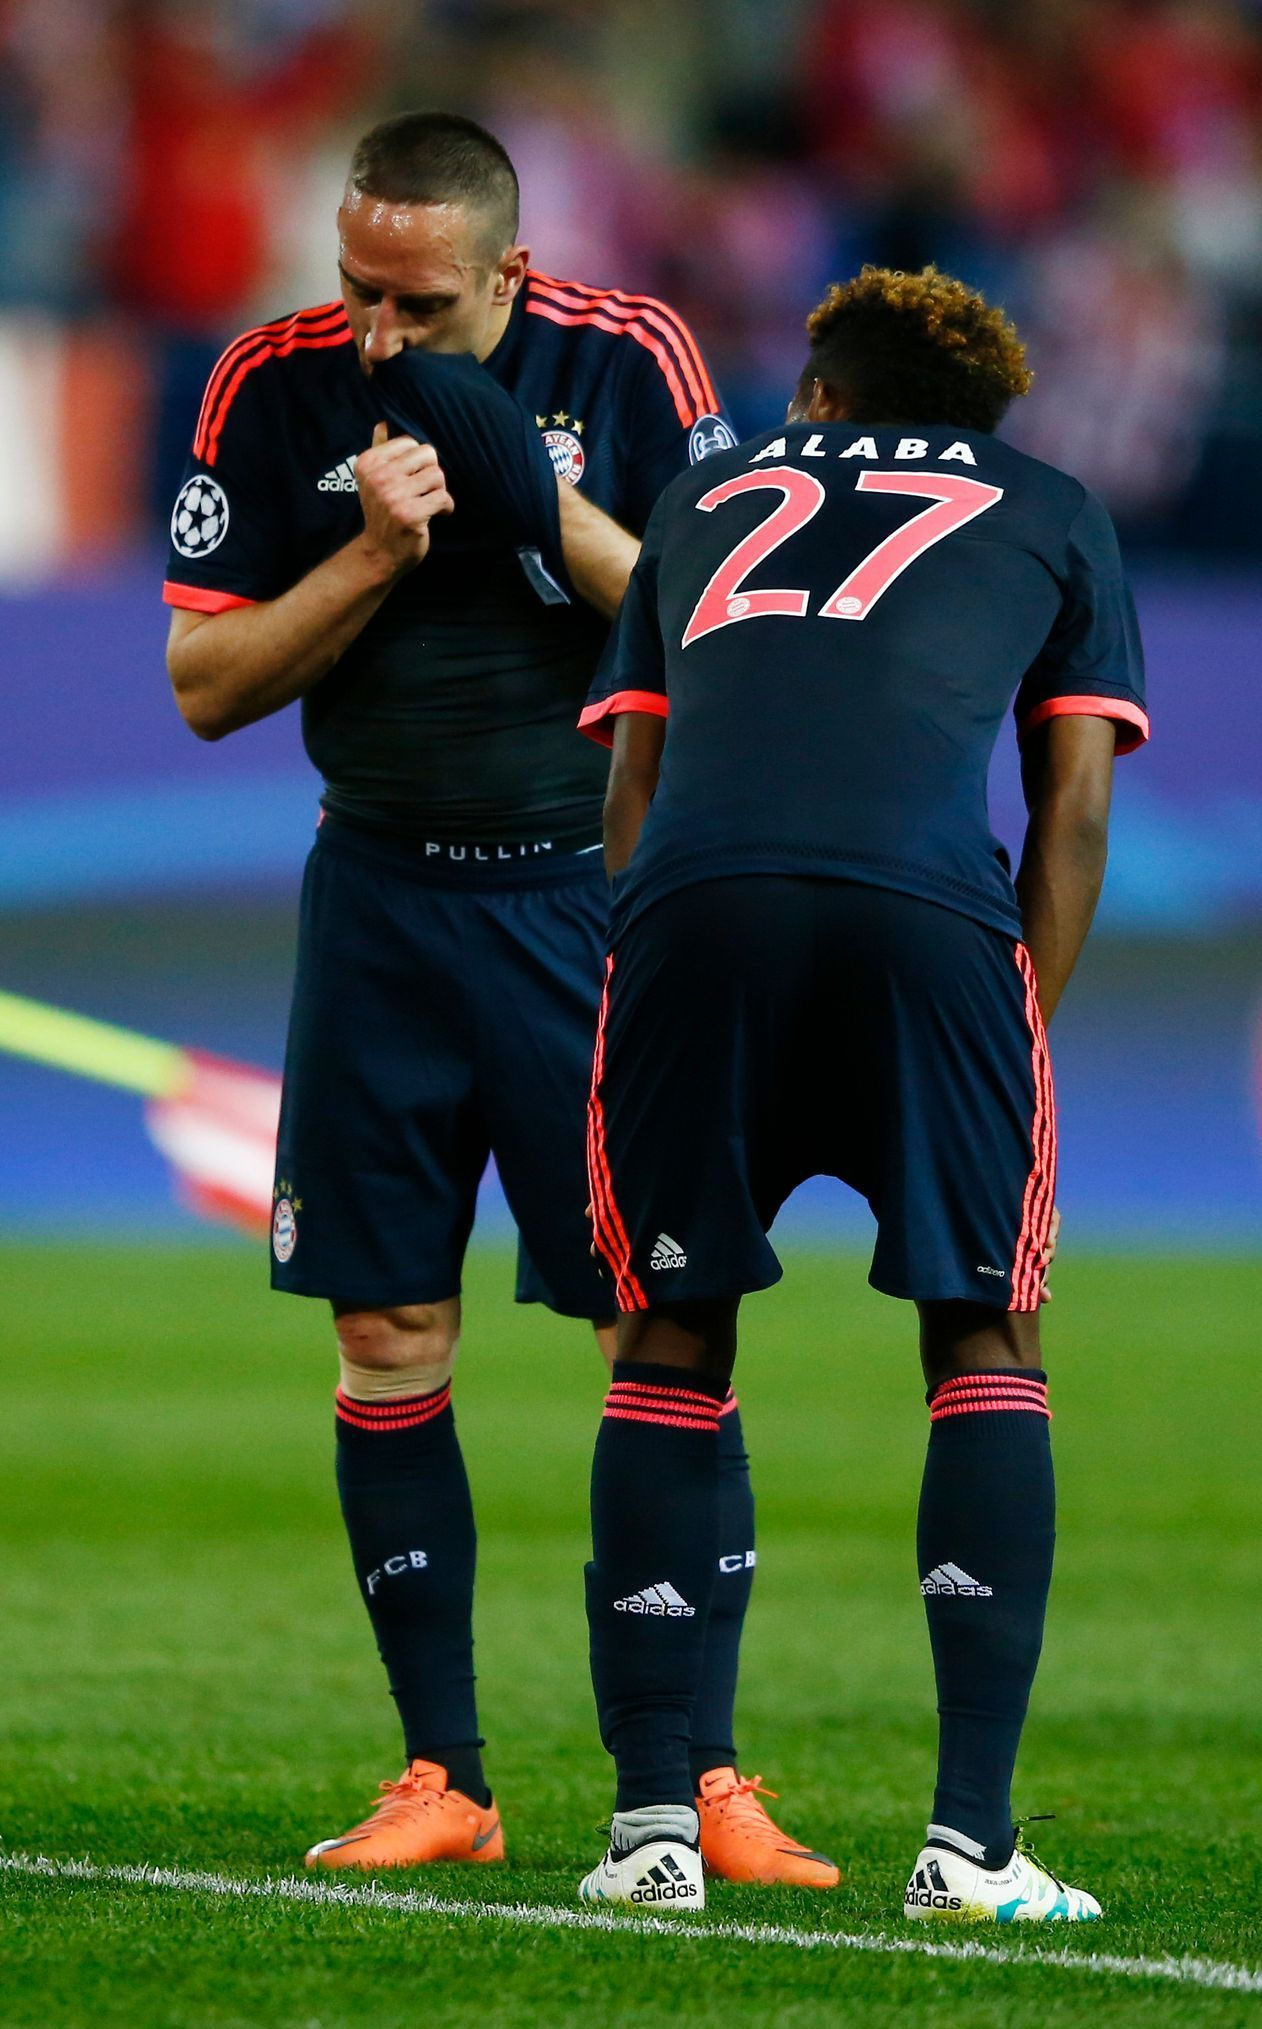 Bayern Munich's Franck Ribery and David Alaba look dejected at the end of the match